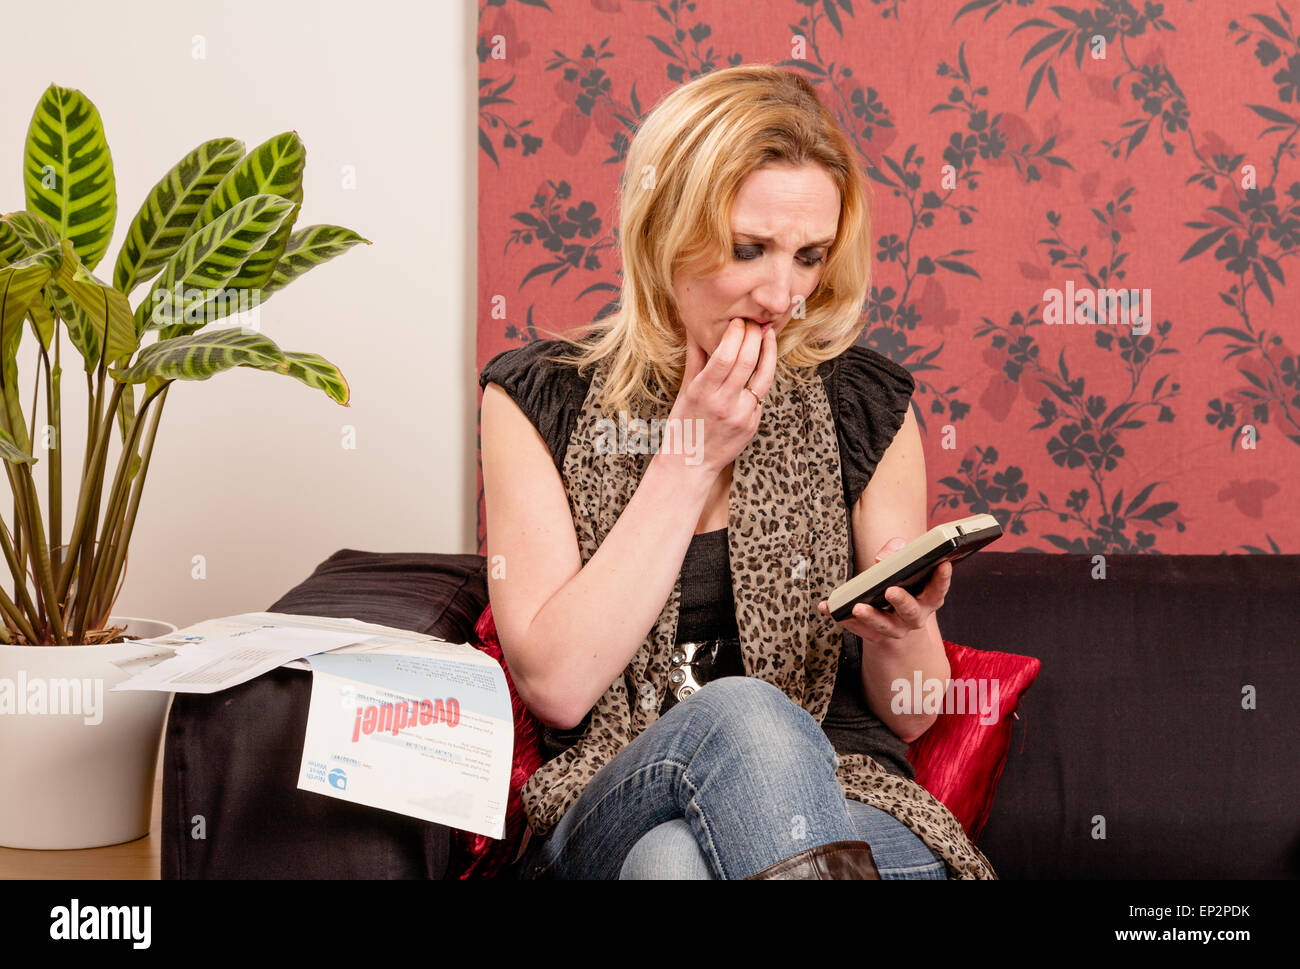 Young woman concerned about bills - Stock Image